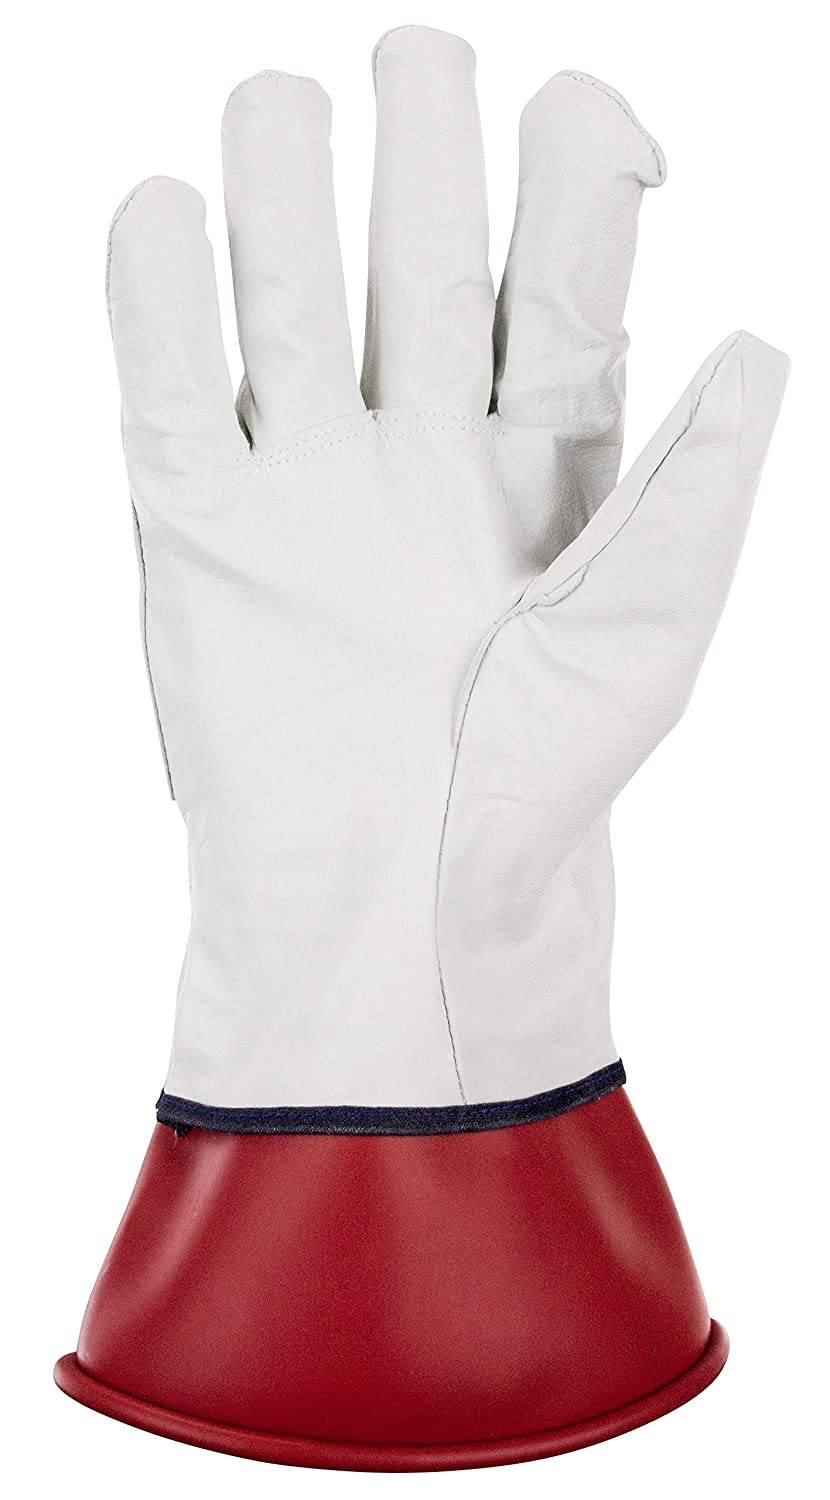 SAS Safety 6467 Leather Protective Over Gloves For Electice Service Gloves Medium SAS Safety Corp.